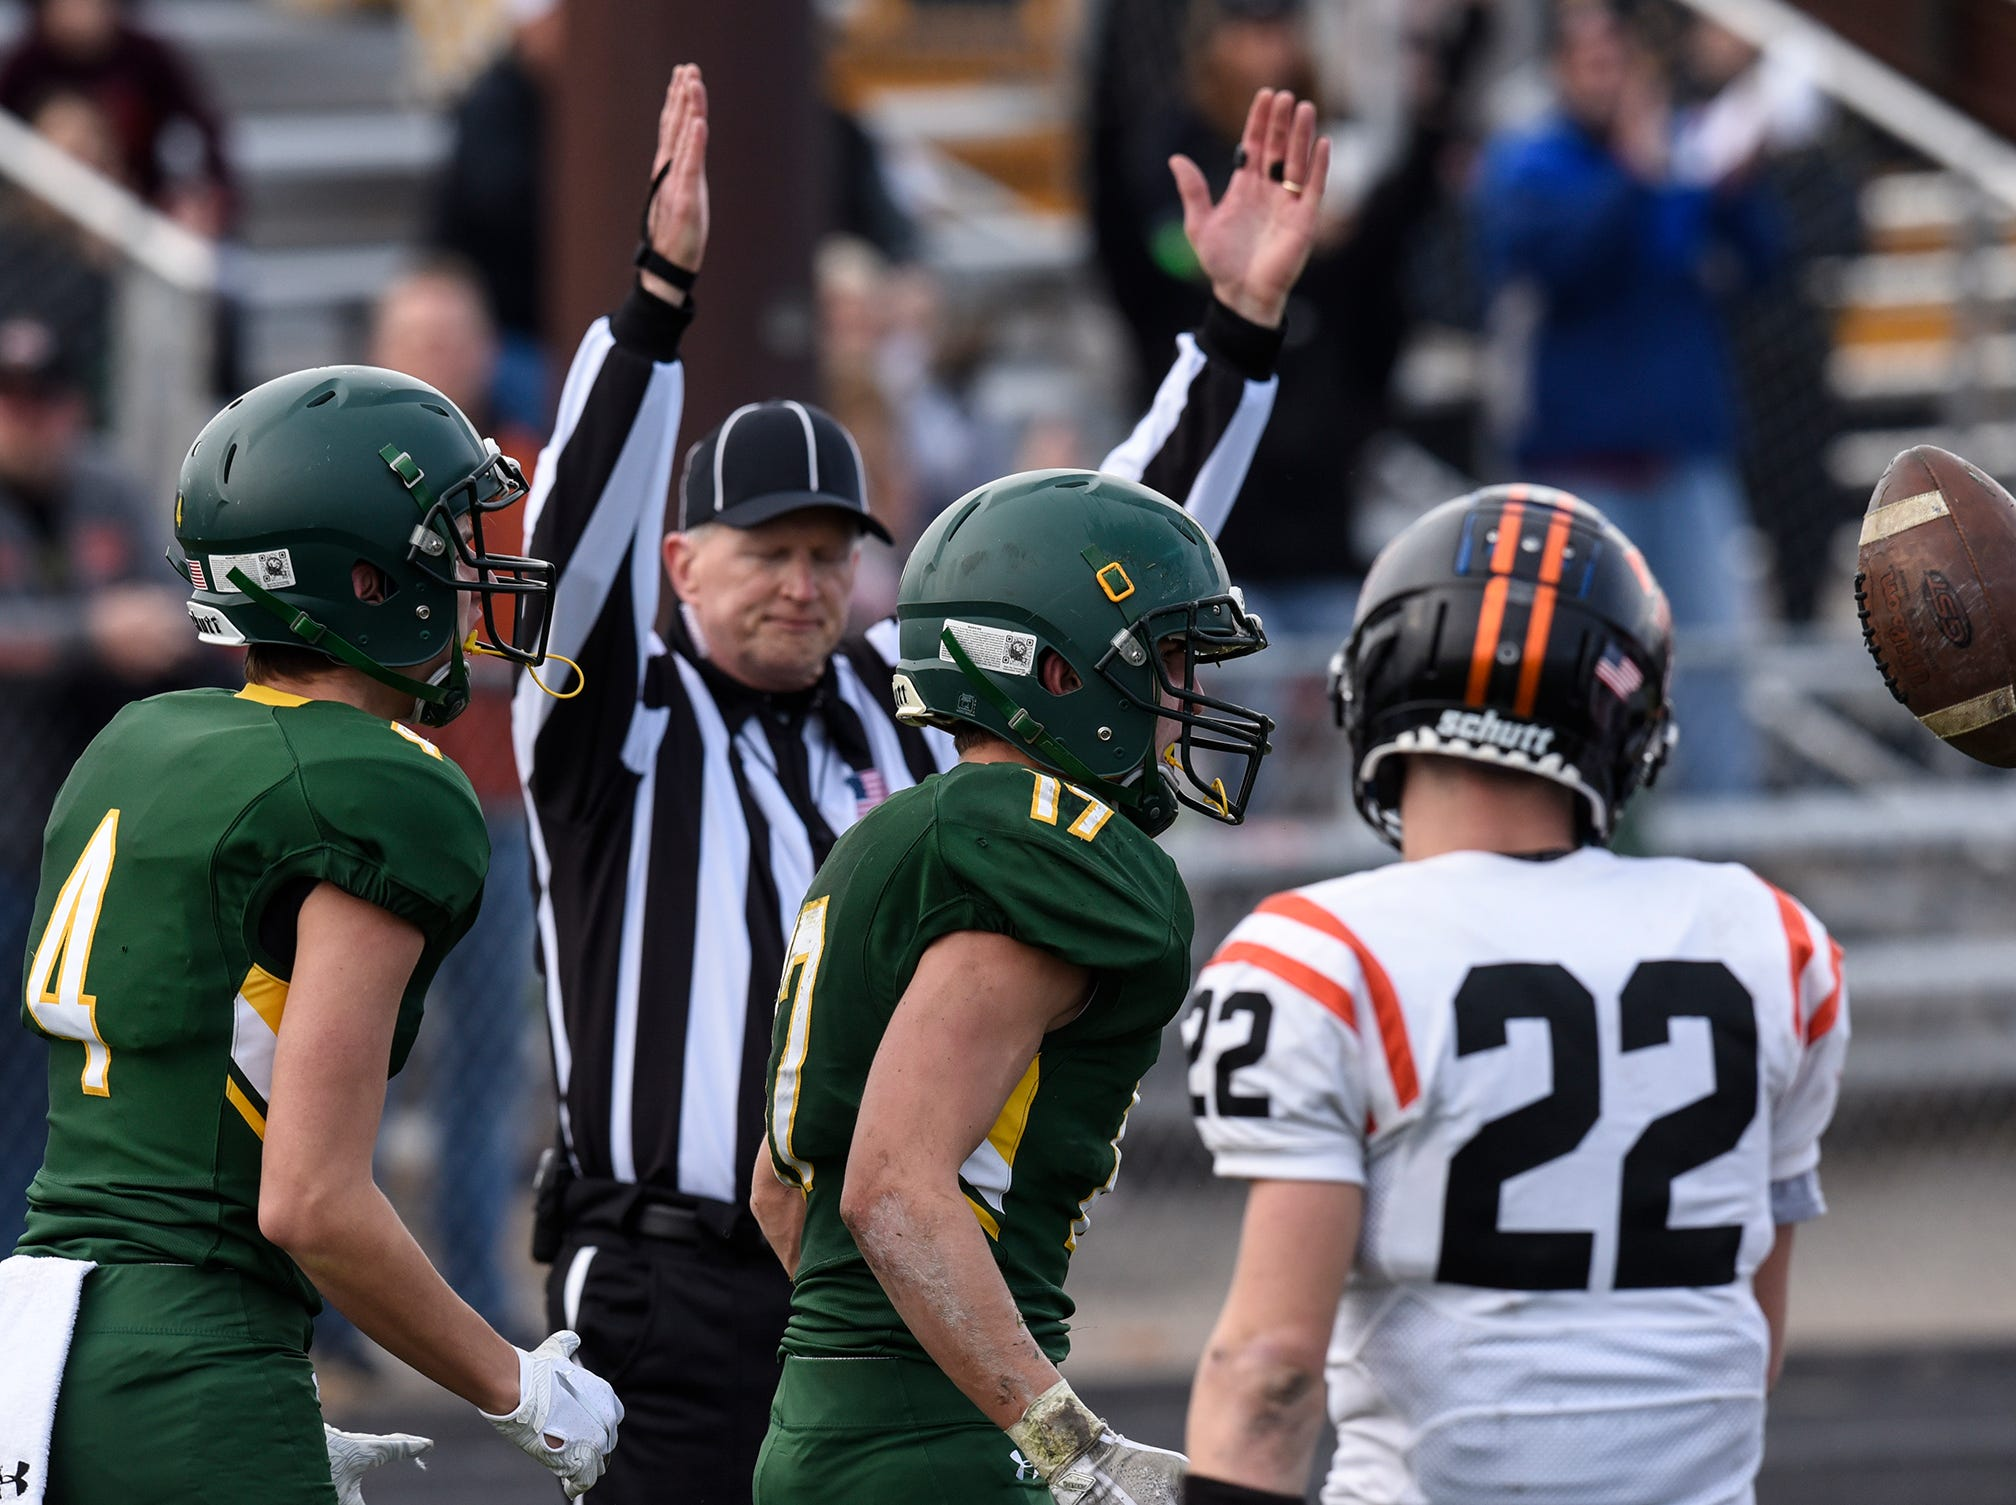 An official signals a Sauk Rapids touchdown Saturday, Oct. 27, during the Section 6-5A semifinal game in Sauk Rapids.